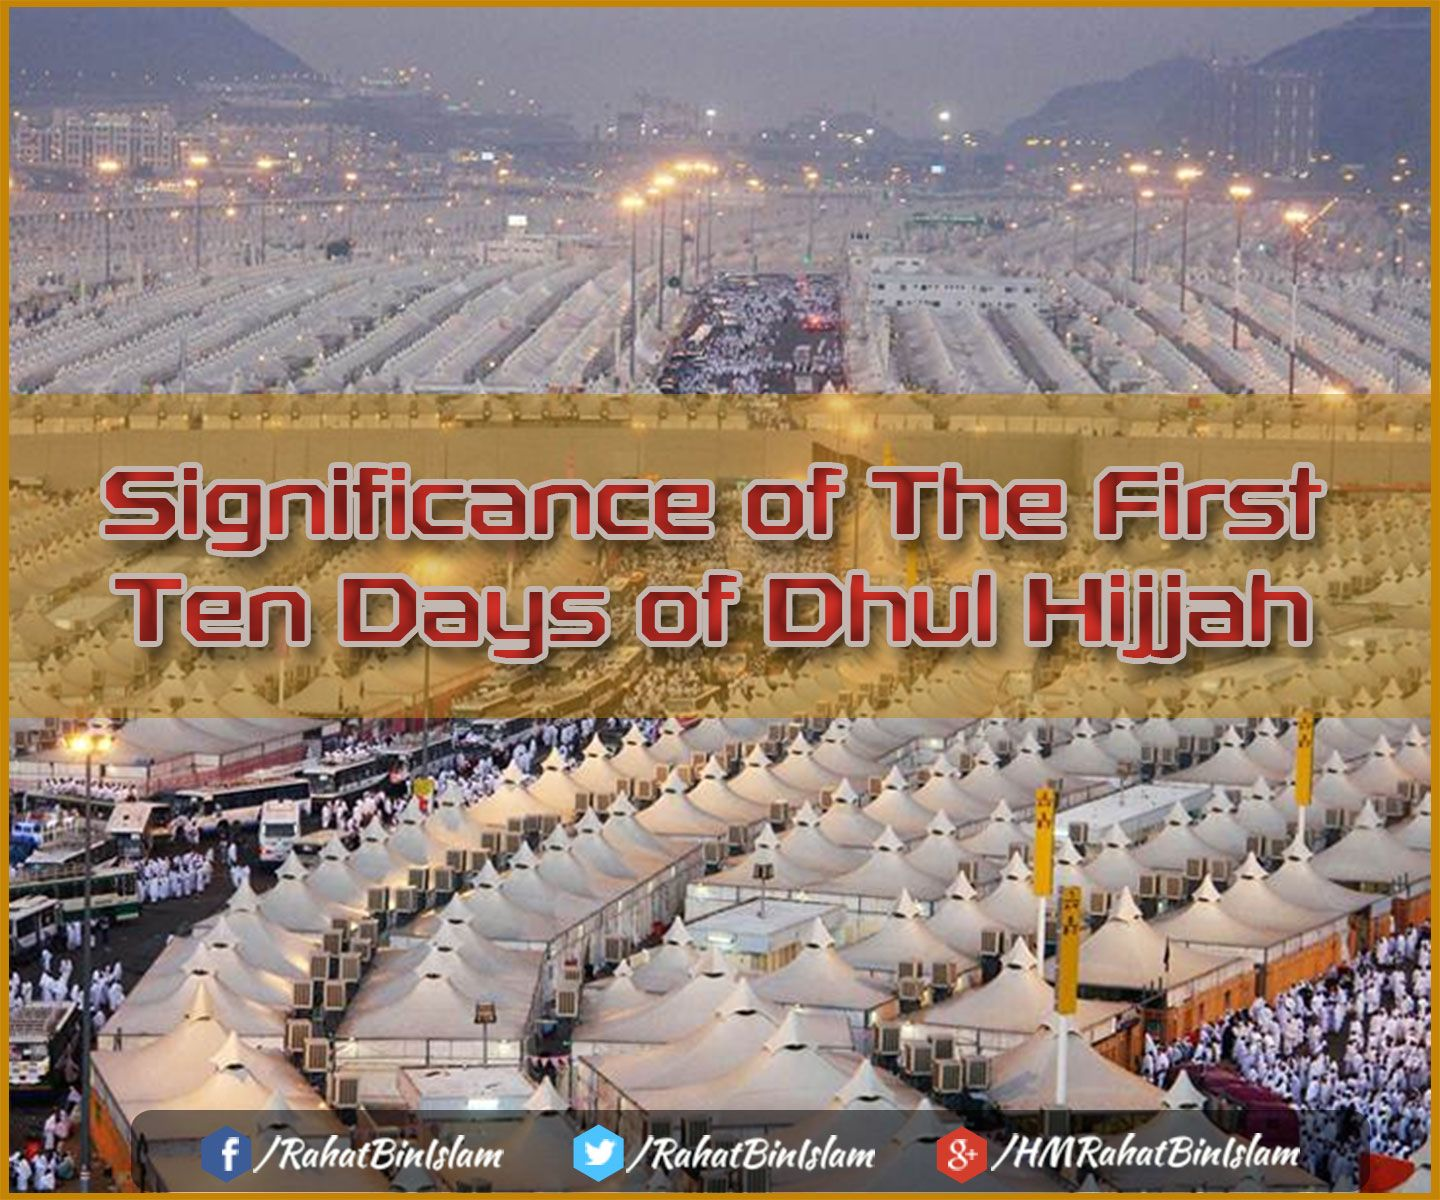 Significance of The First Ten Days of Dhul Hijjah: https://plus.google.com/107079048703897859897/posts/N8fPBdjz9qN || #Quran #Hadith #Allah #Islam #Muslim #DhulHijjah